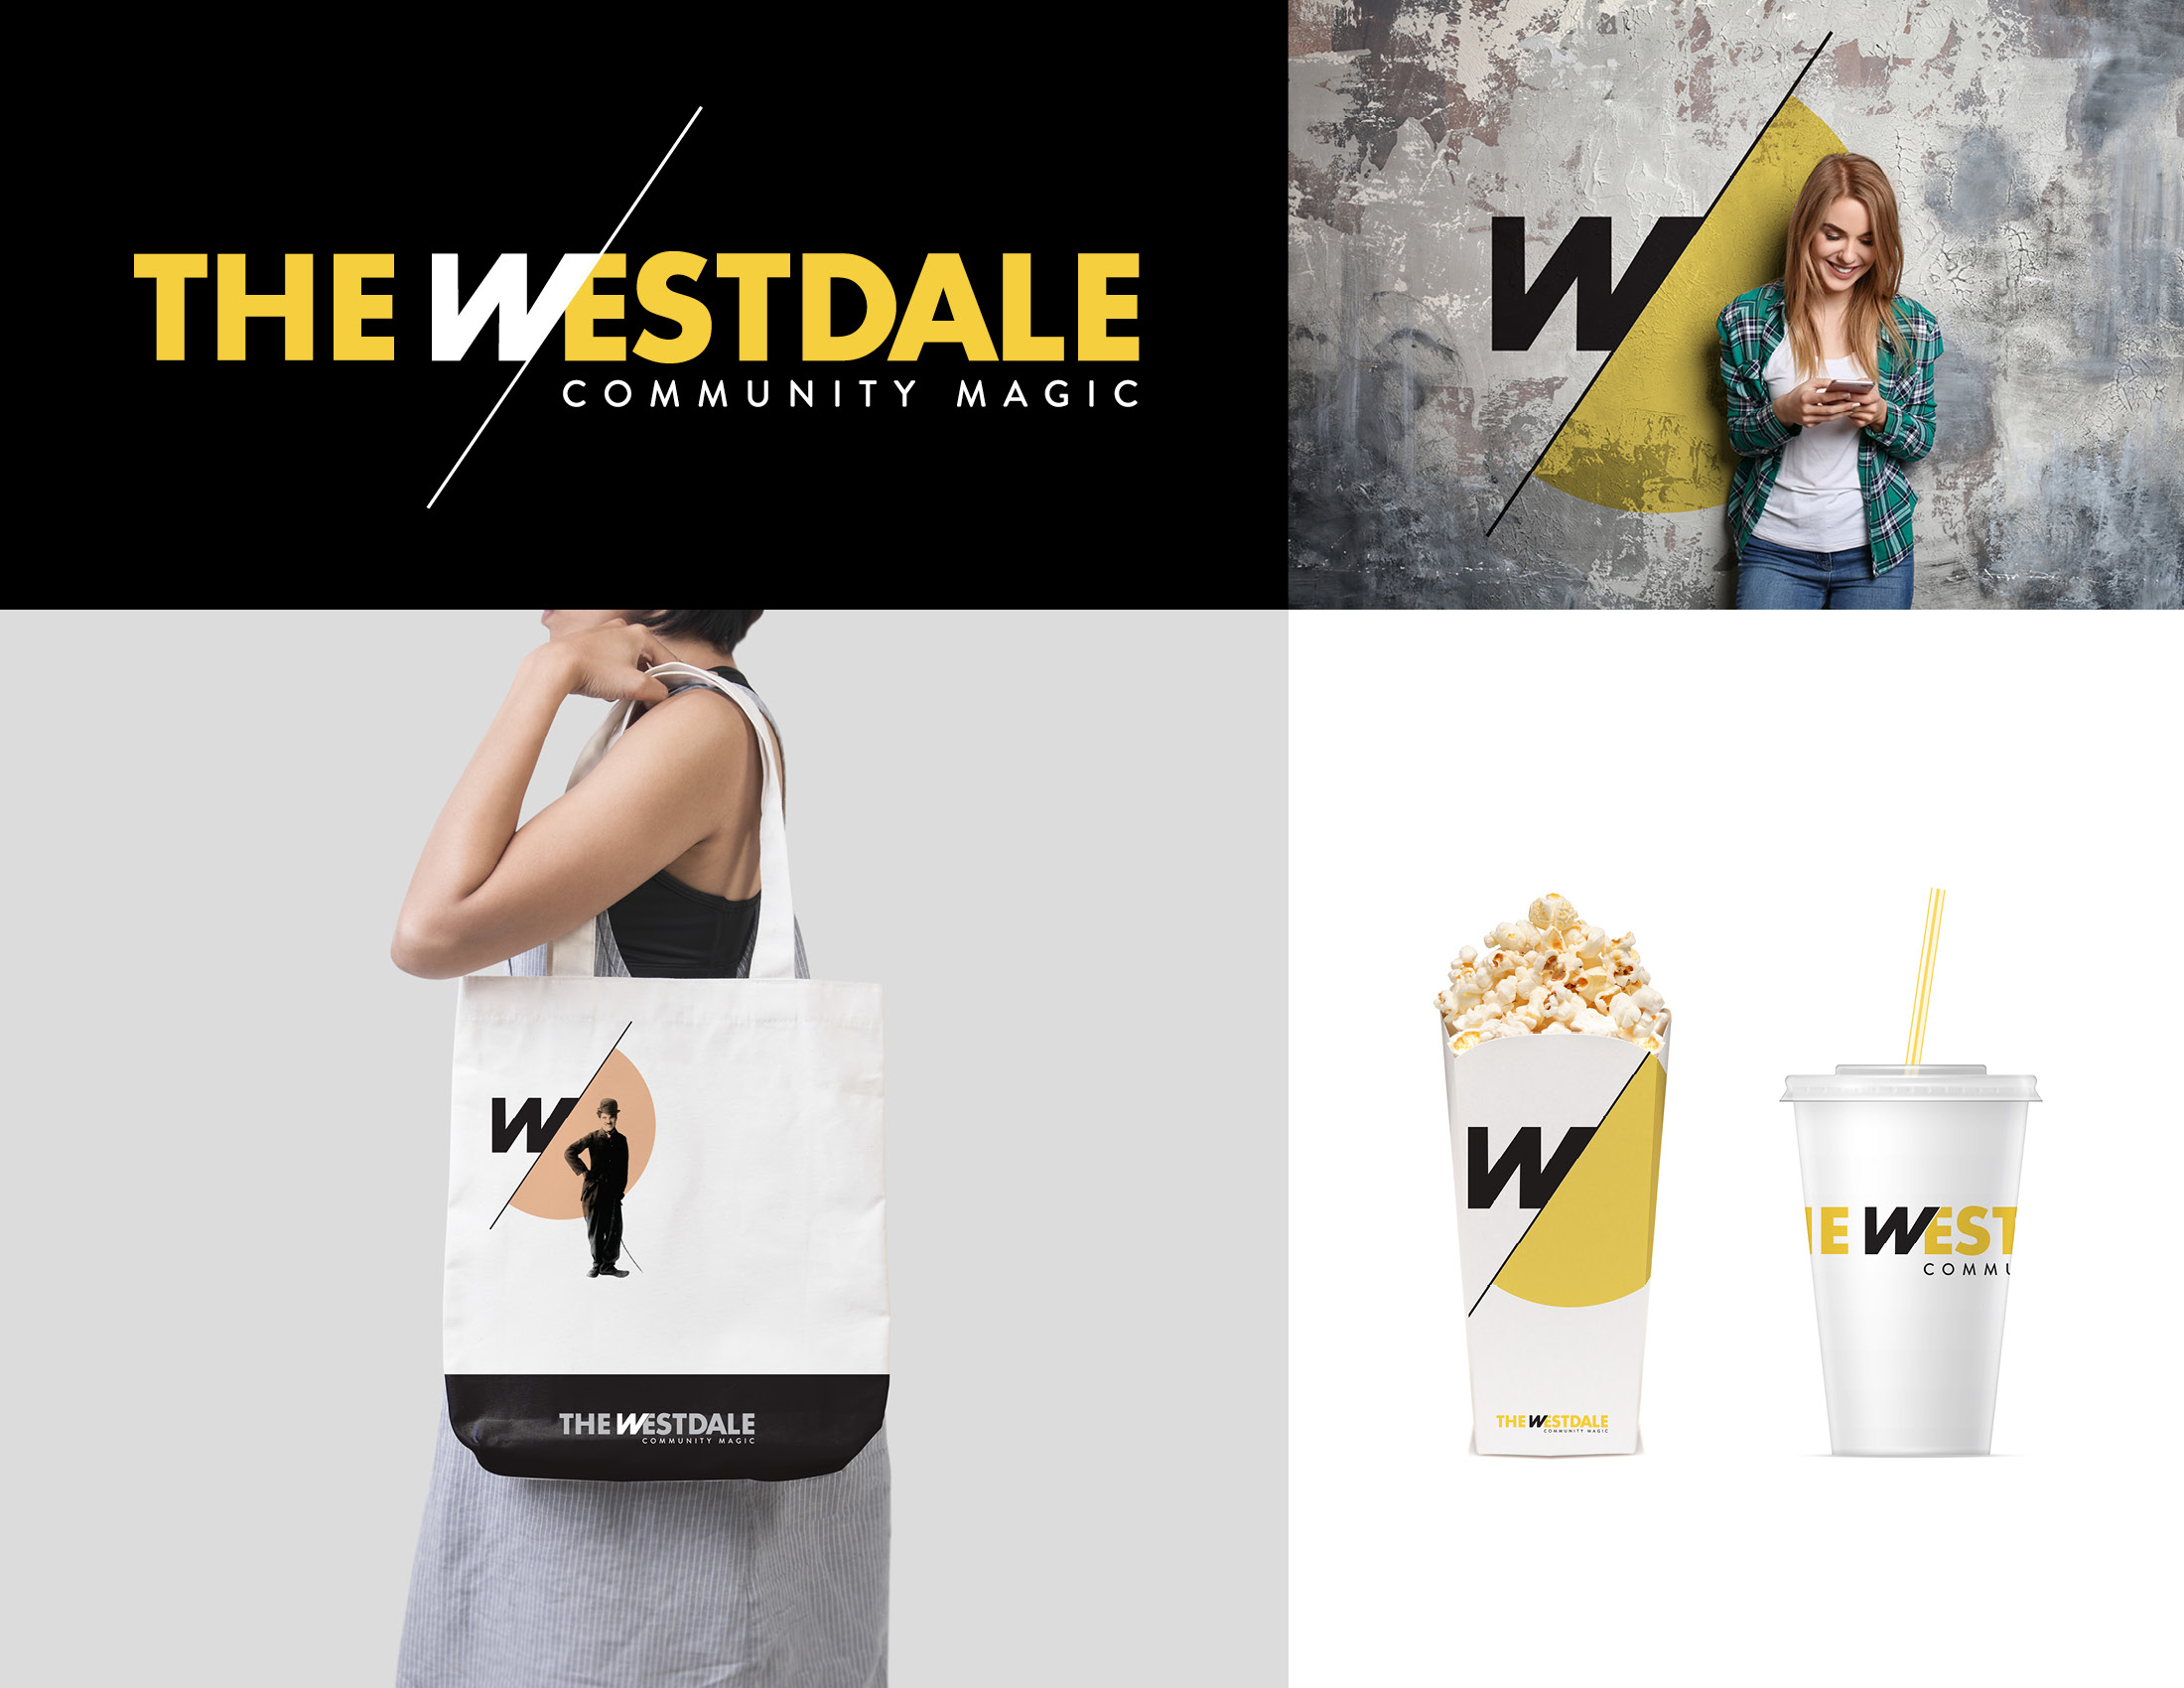 """The Westdale - """"We are so proud to use our brand every day to communicate with our community. Thank you all for your dedication, professionalism, and spirit.""""— Graham Crawford"""